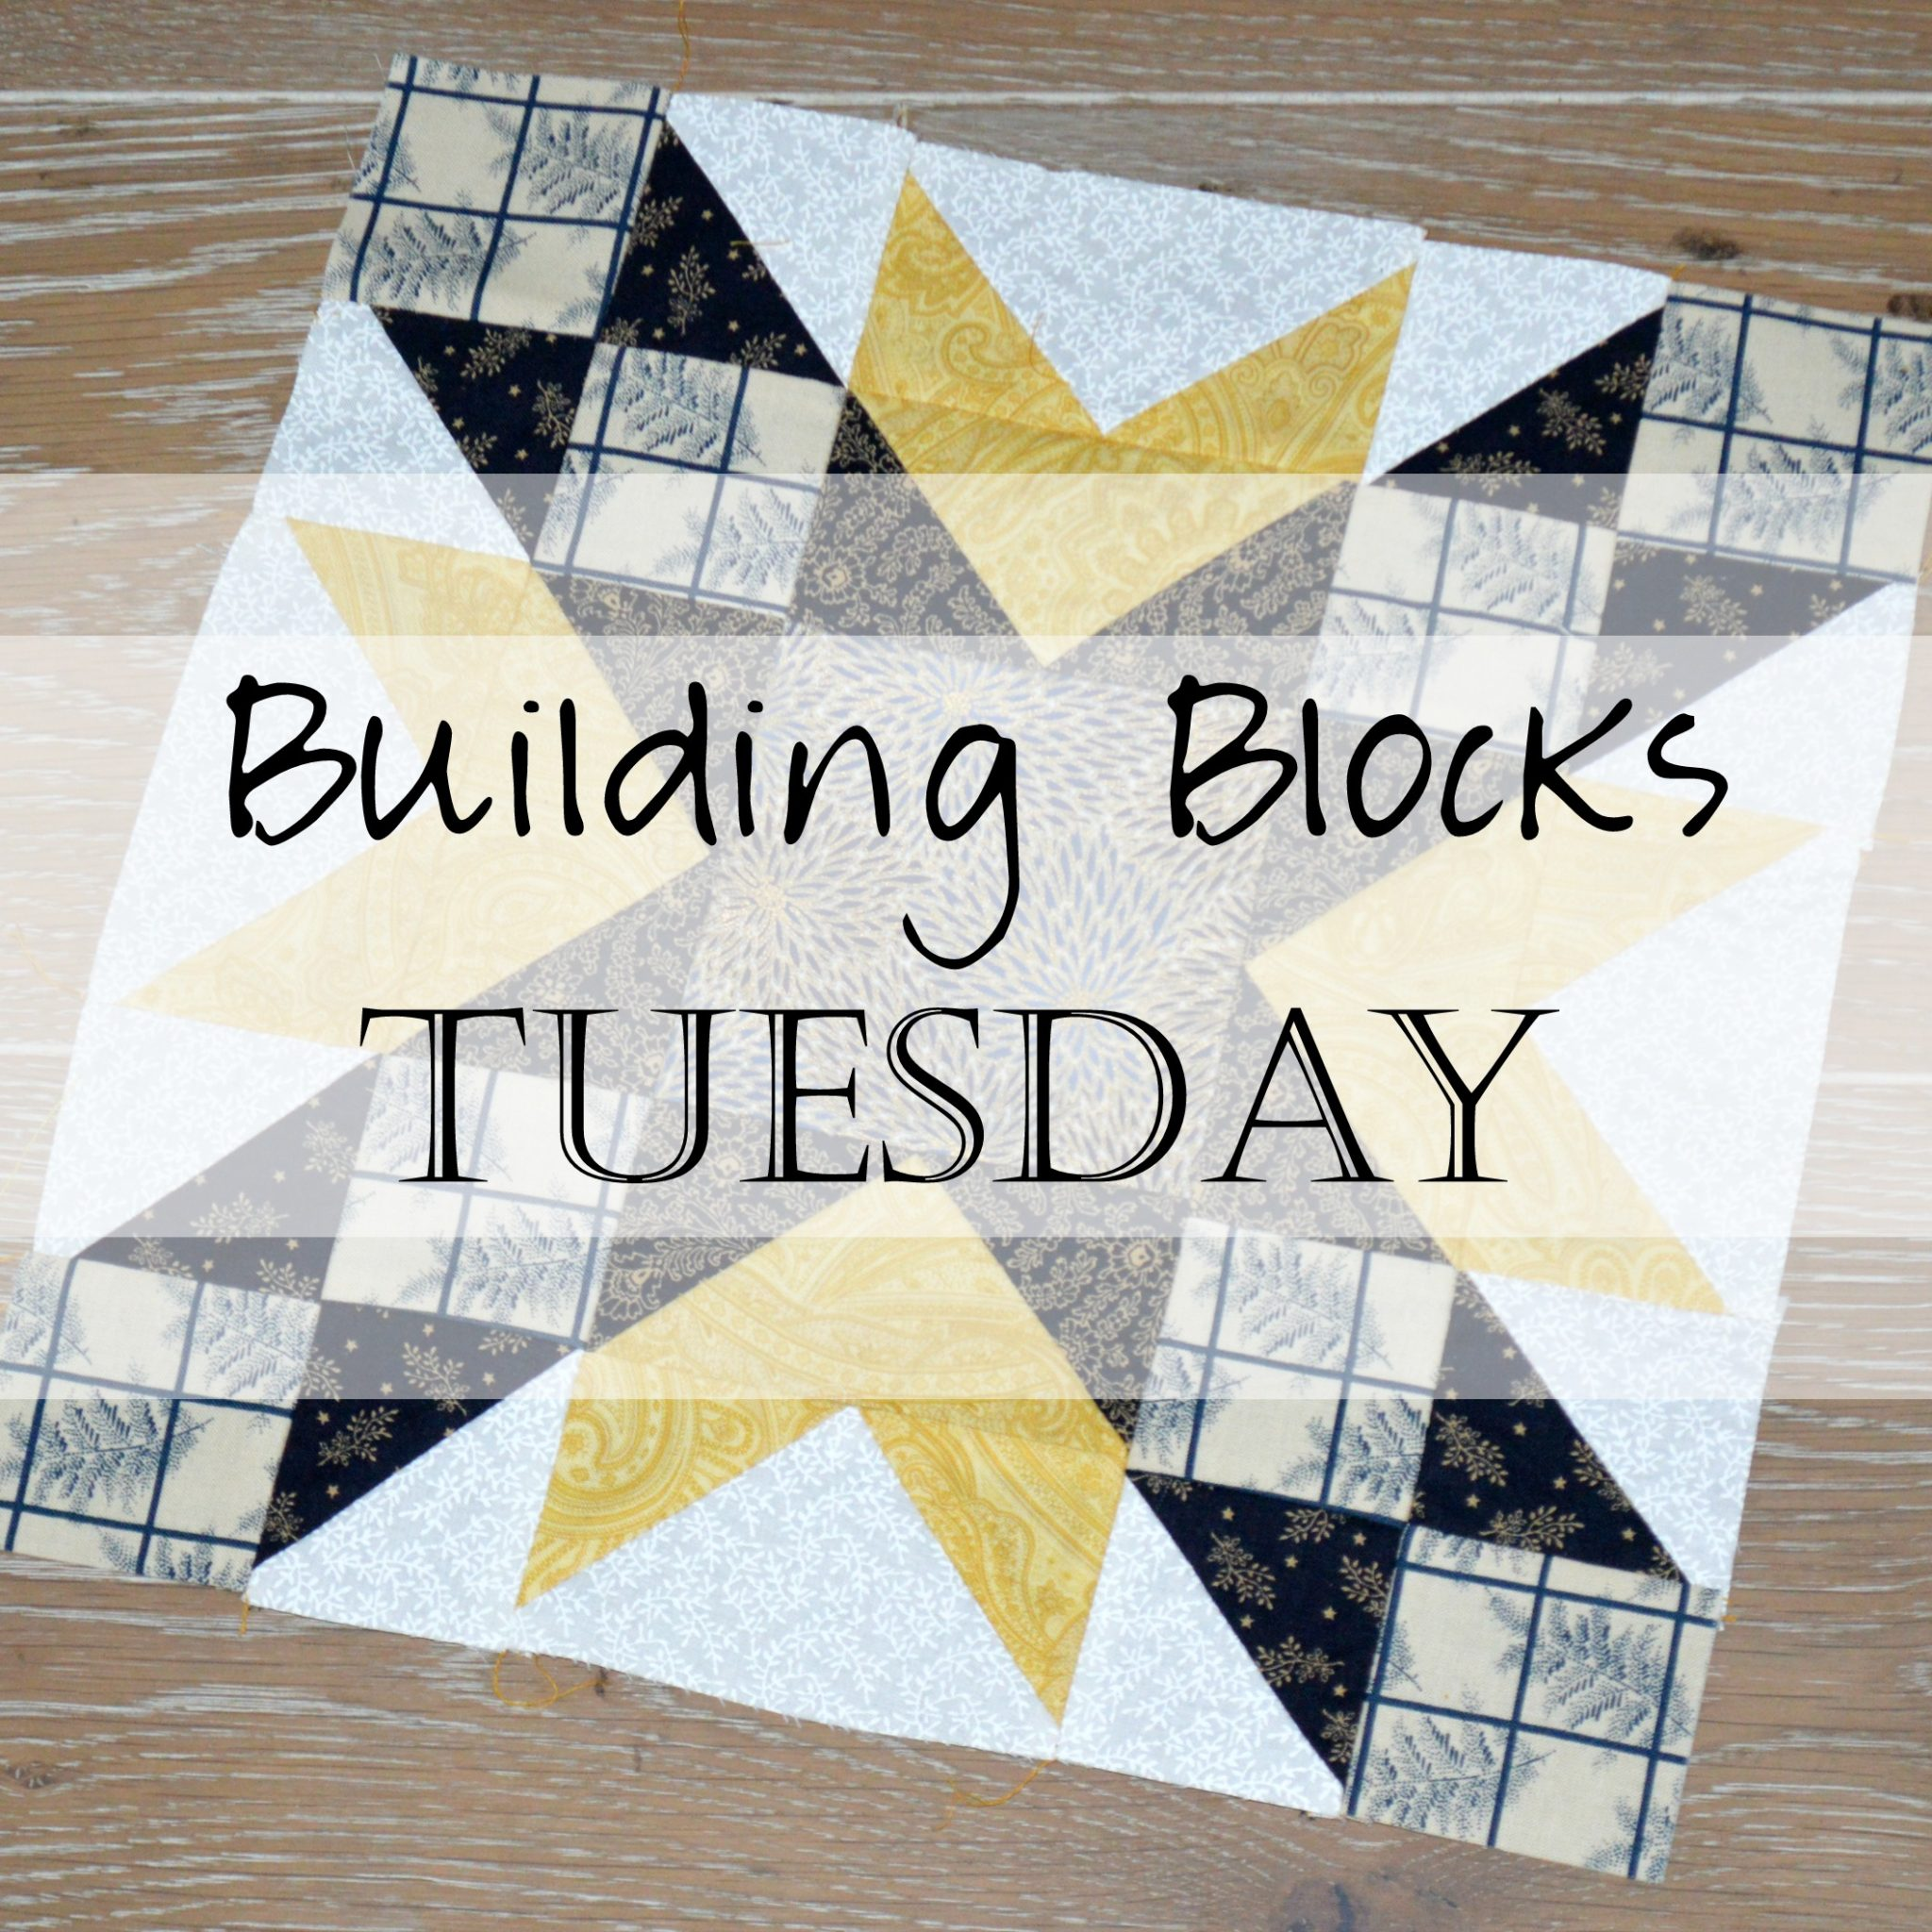 Building Blocks Tuesday: Busy Bee Blocks